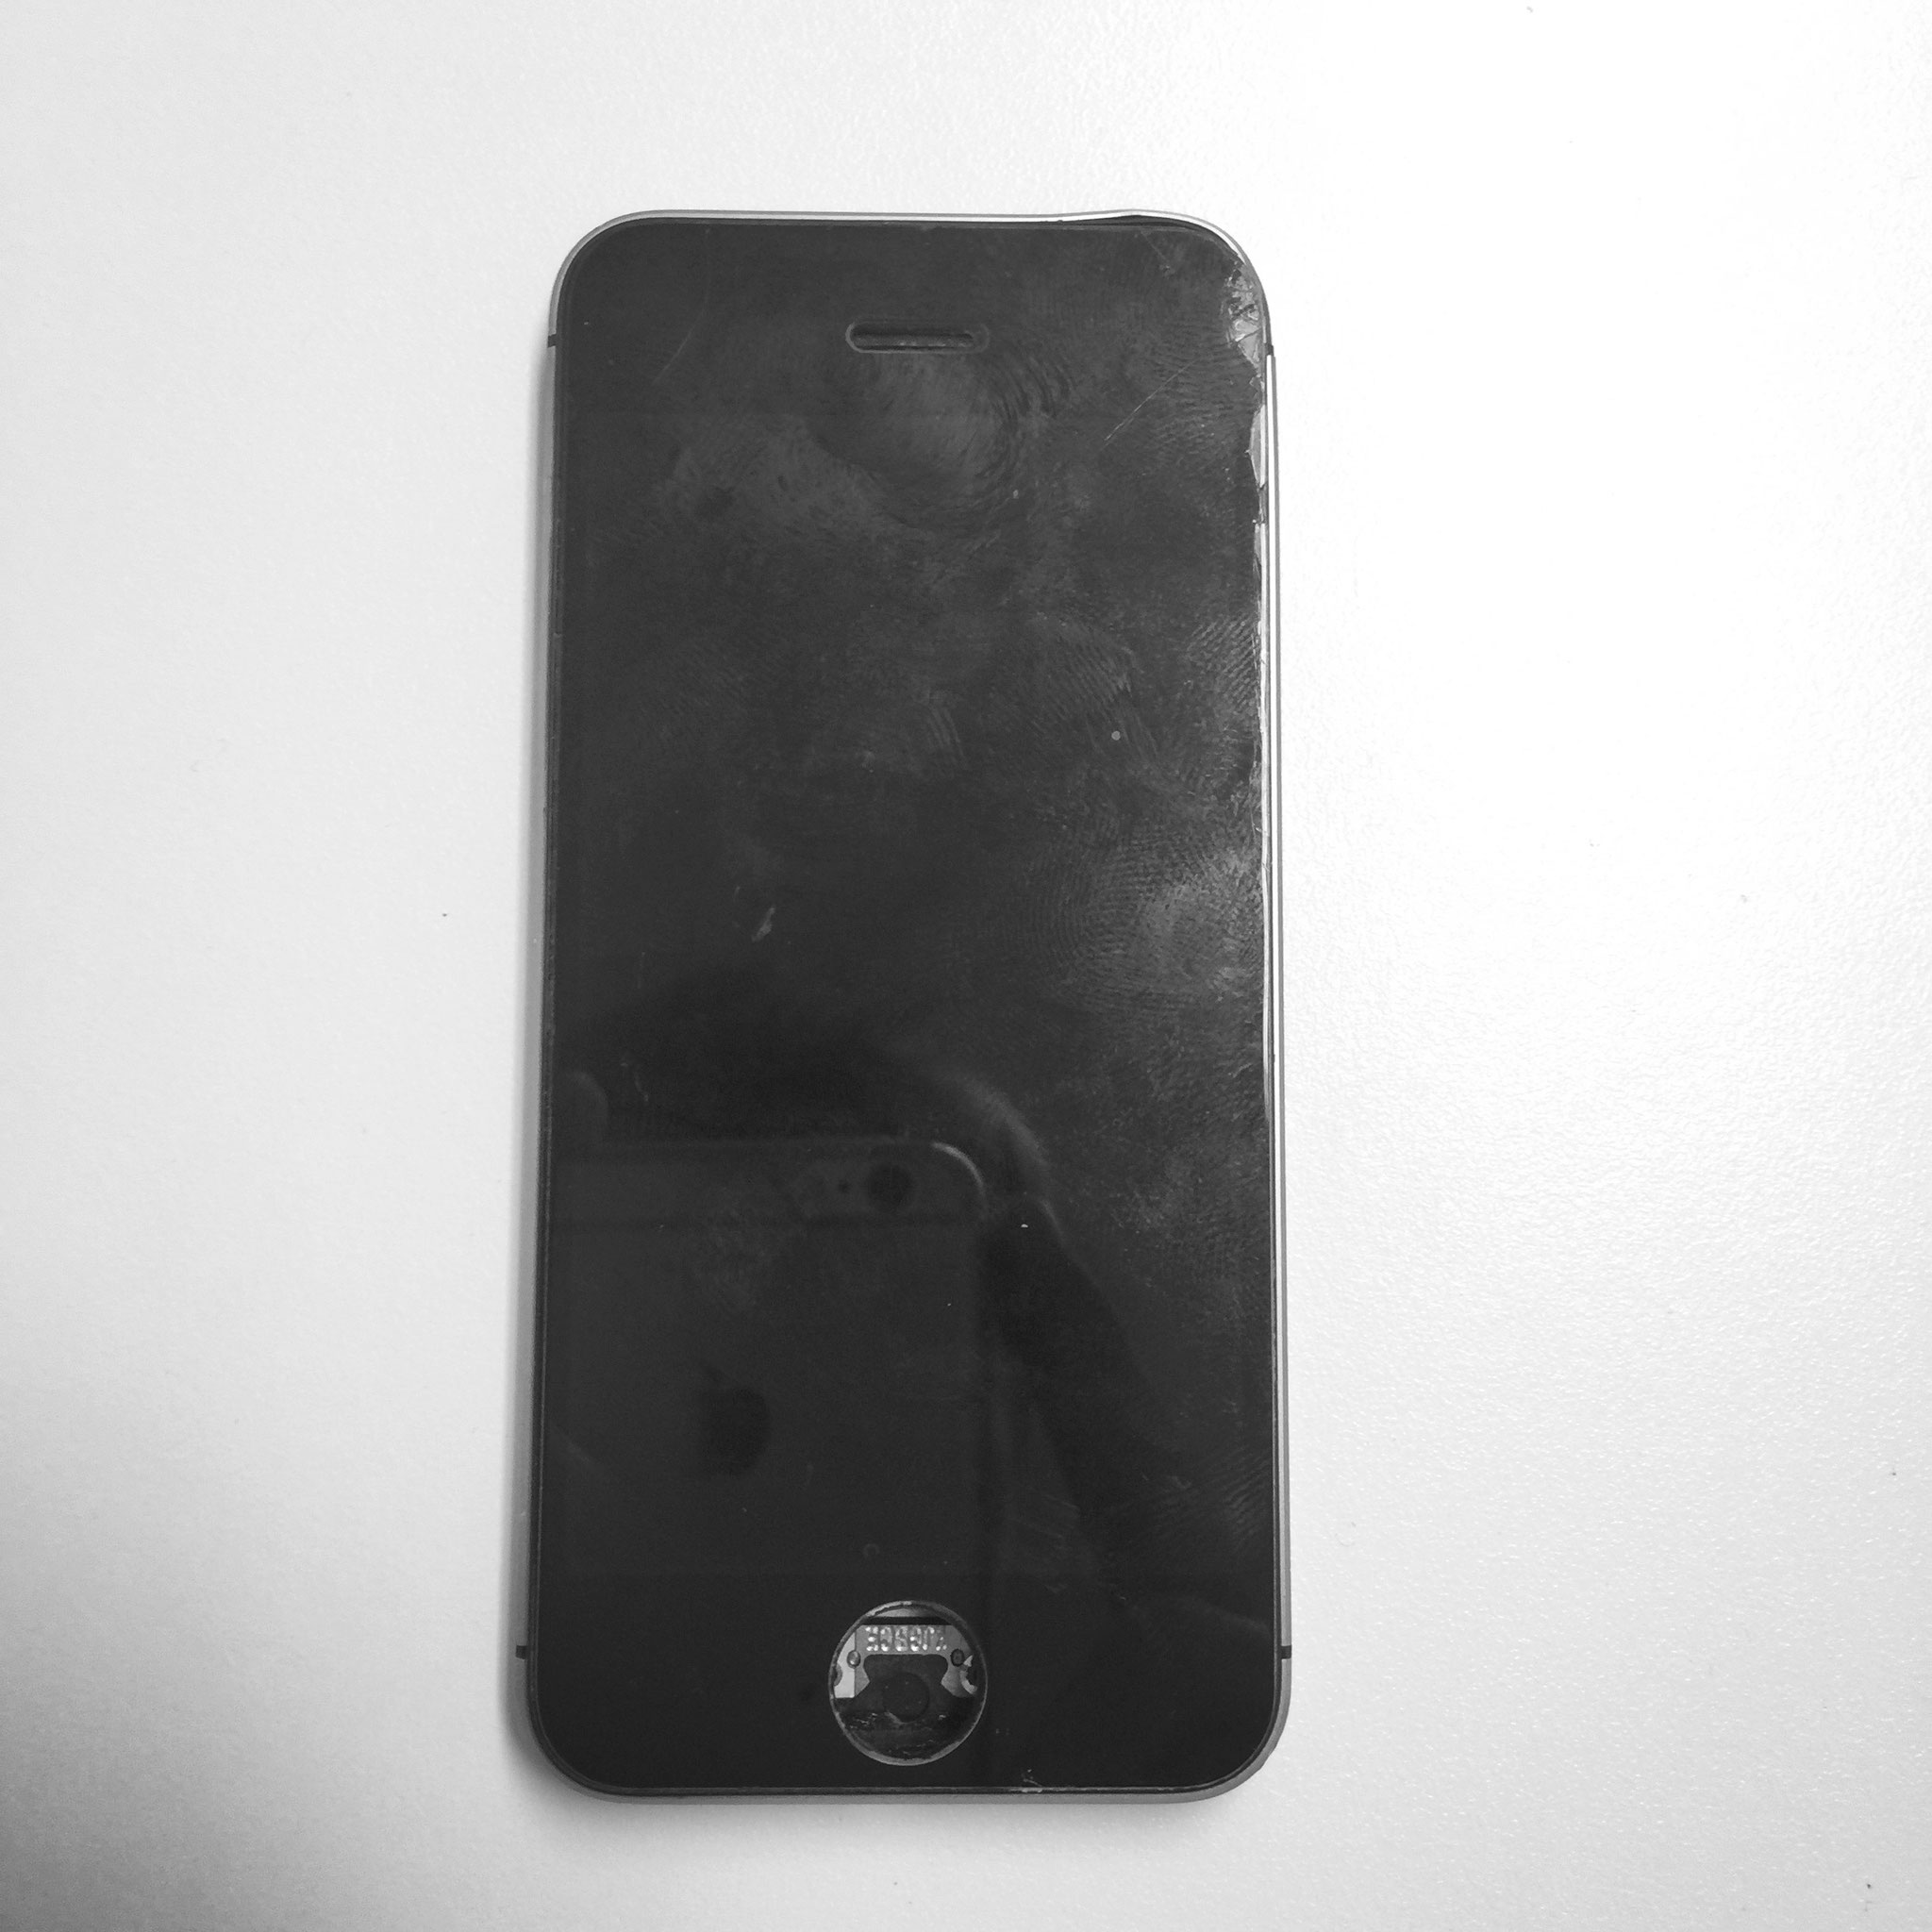 iPhone 5S Glas LCD defekt